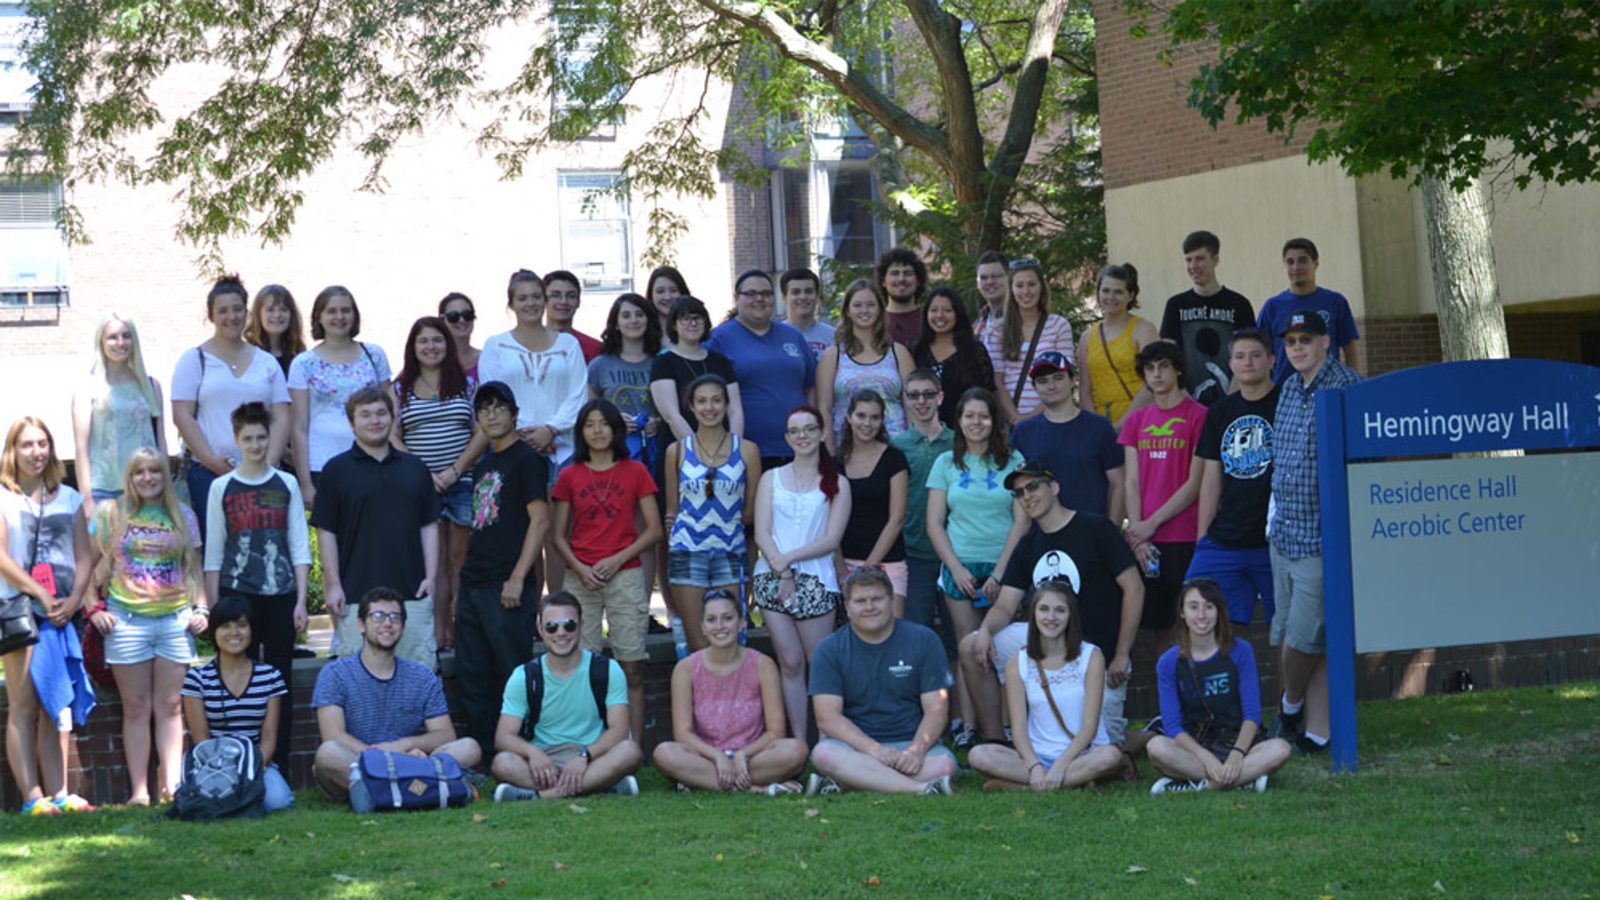 honors students pose for photo outside Hemingway Hall